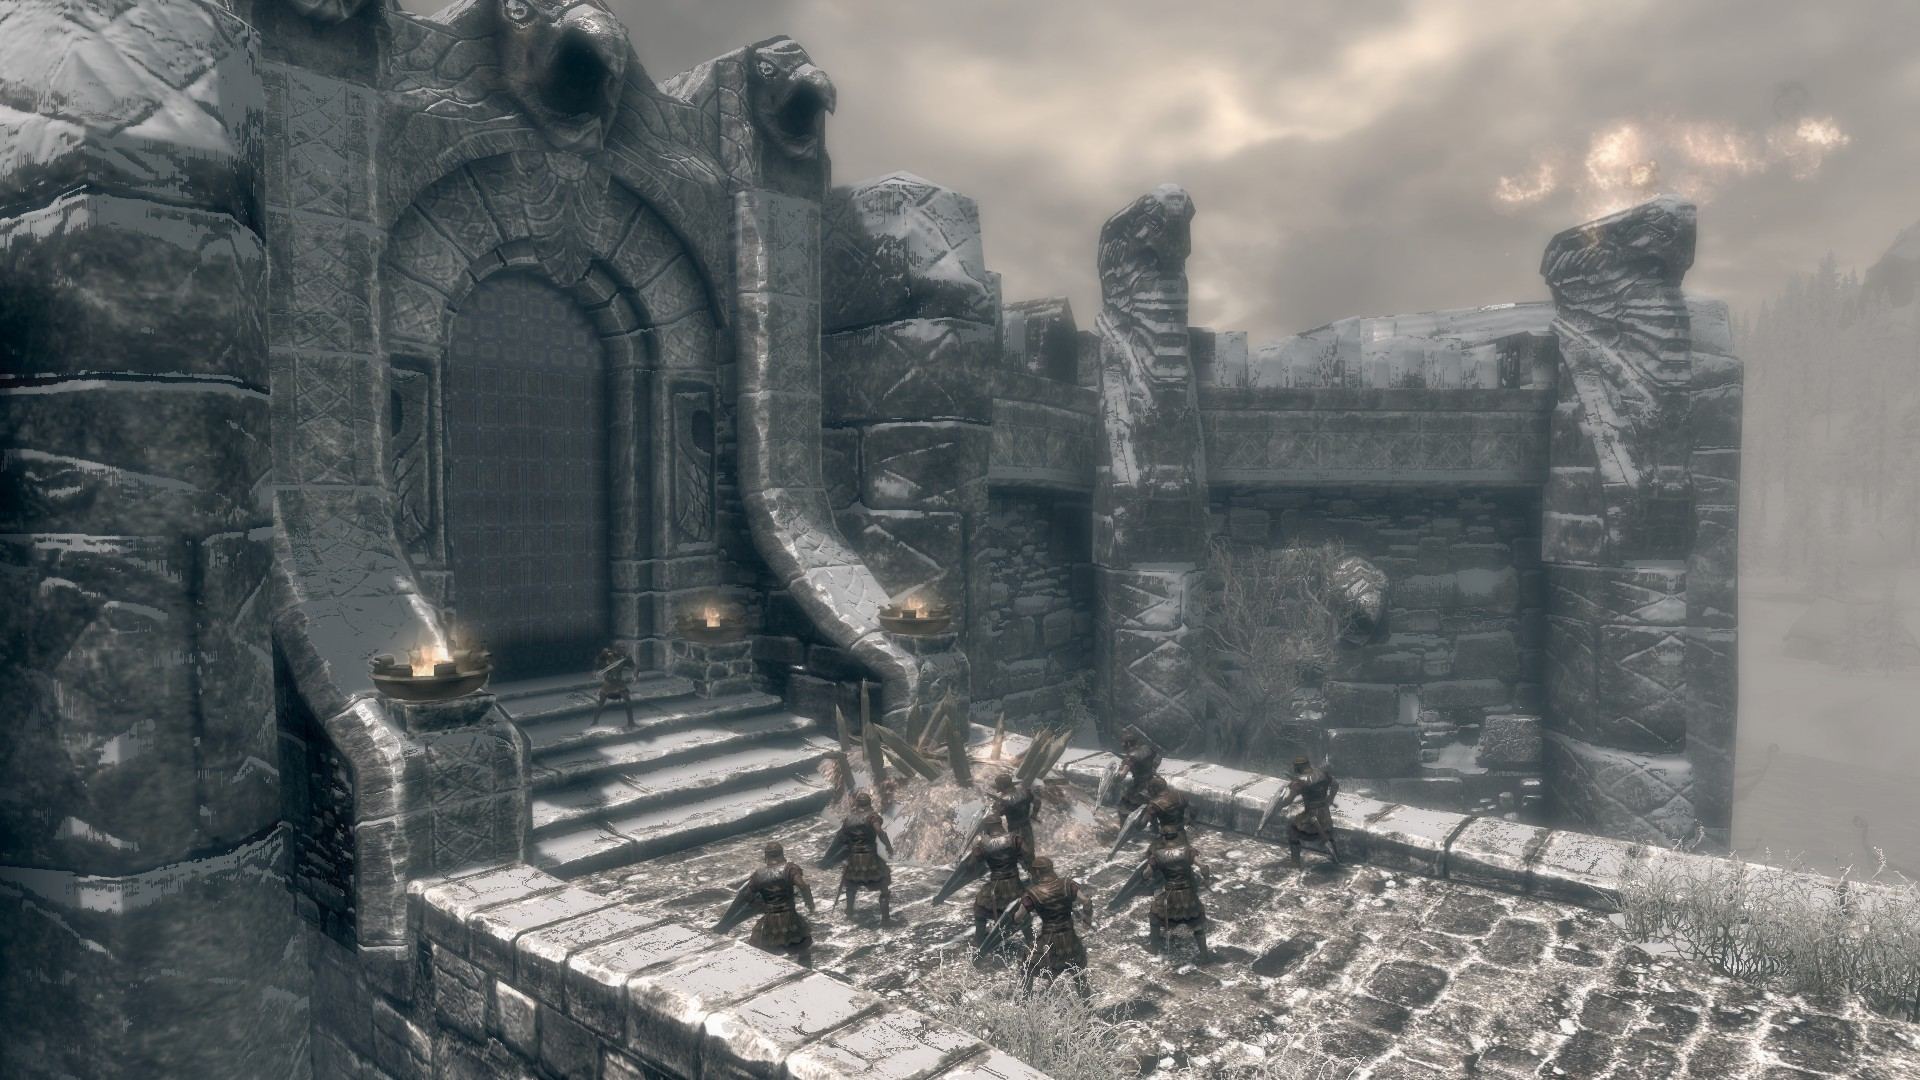 Battle for Windhelm